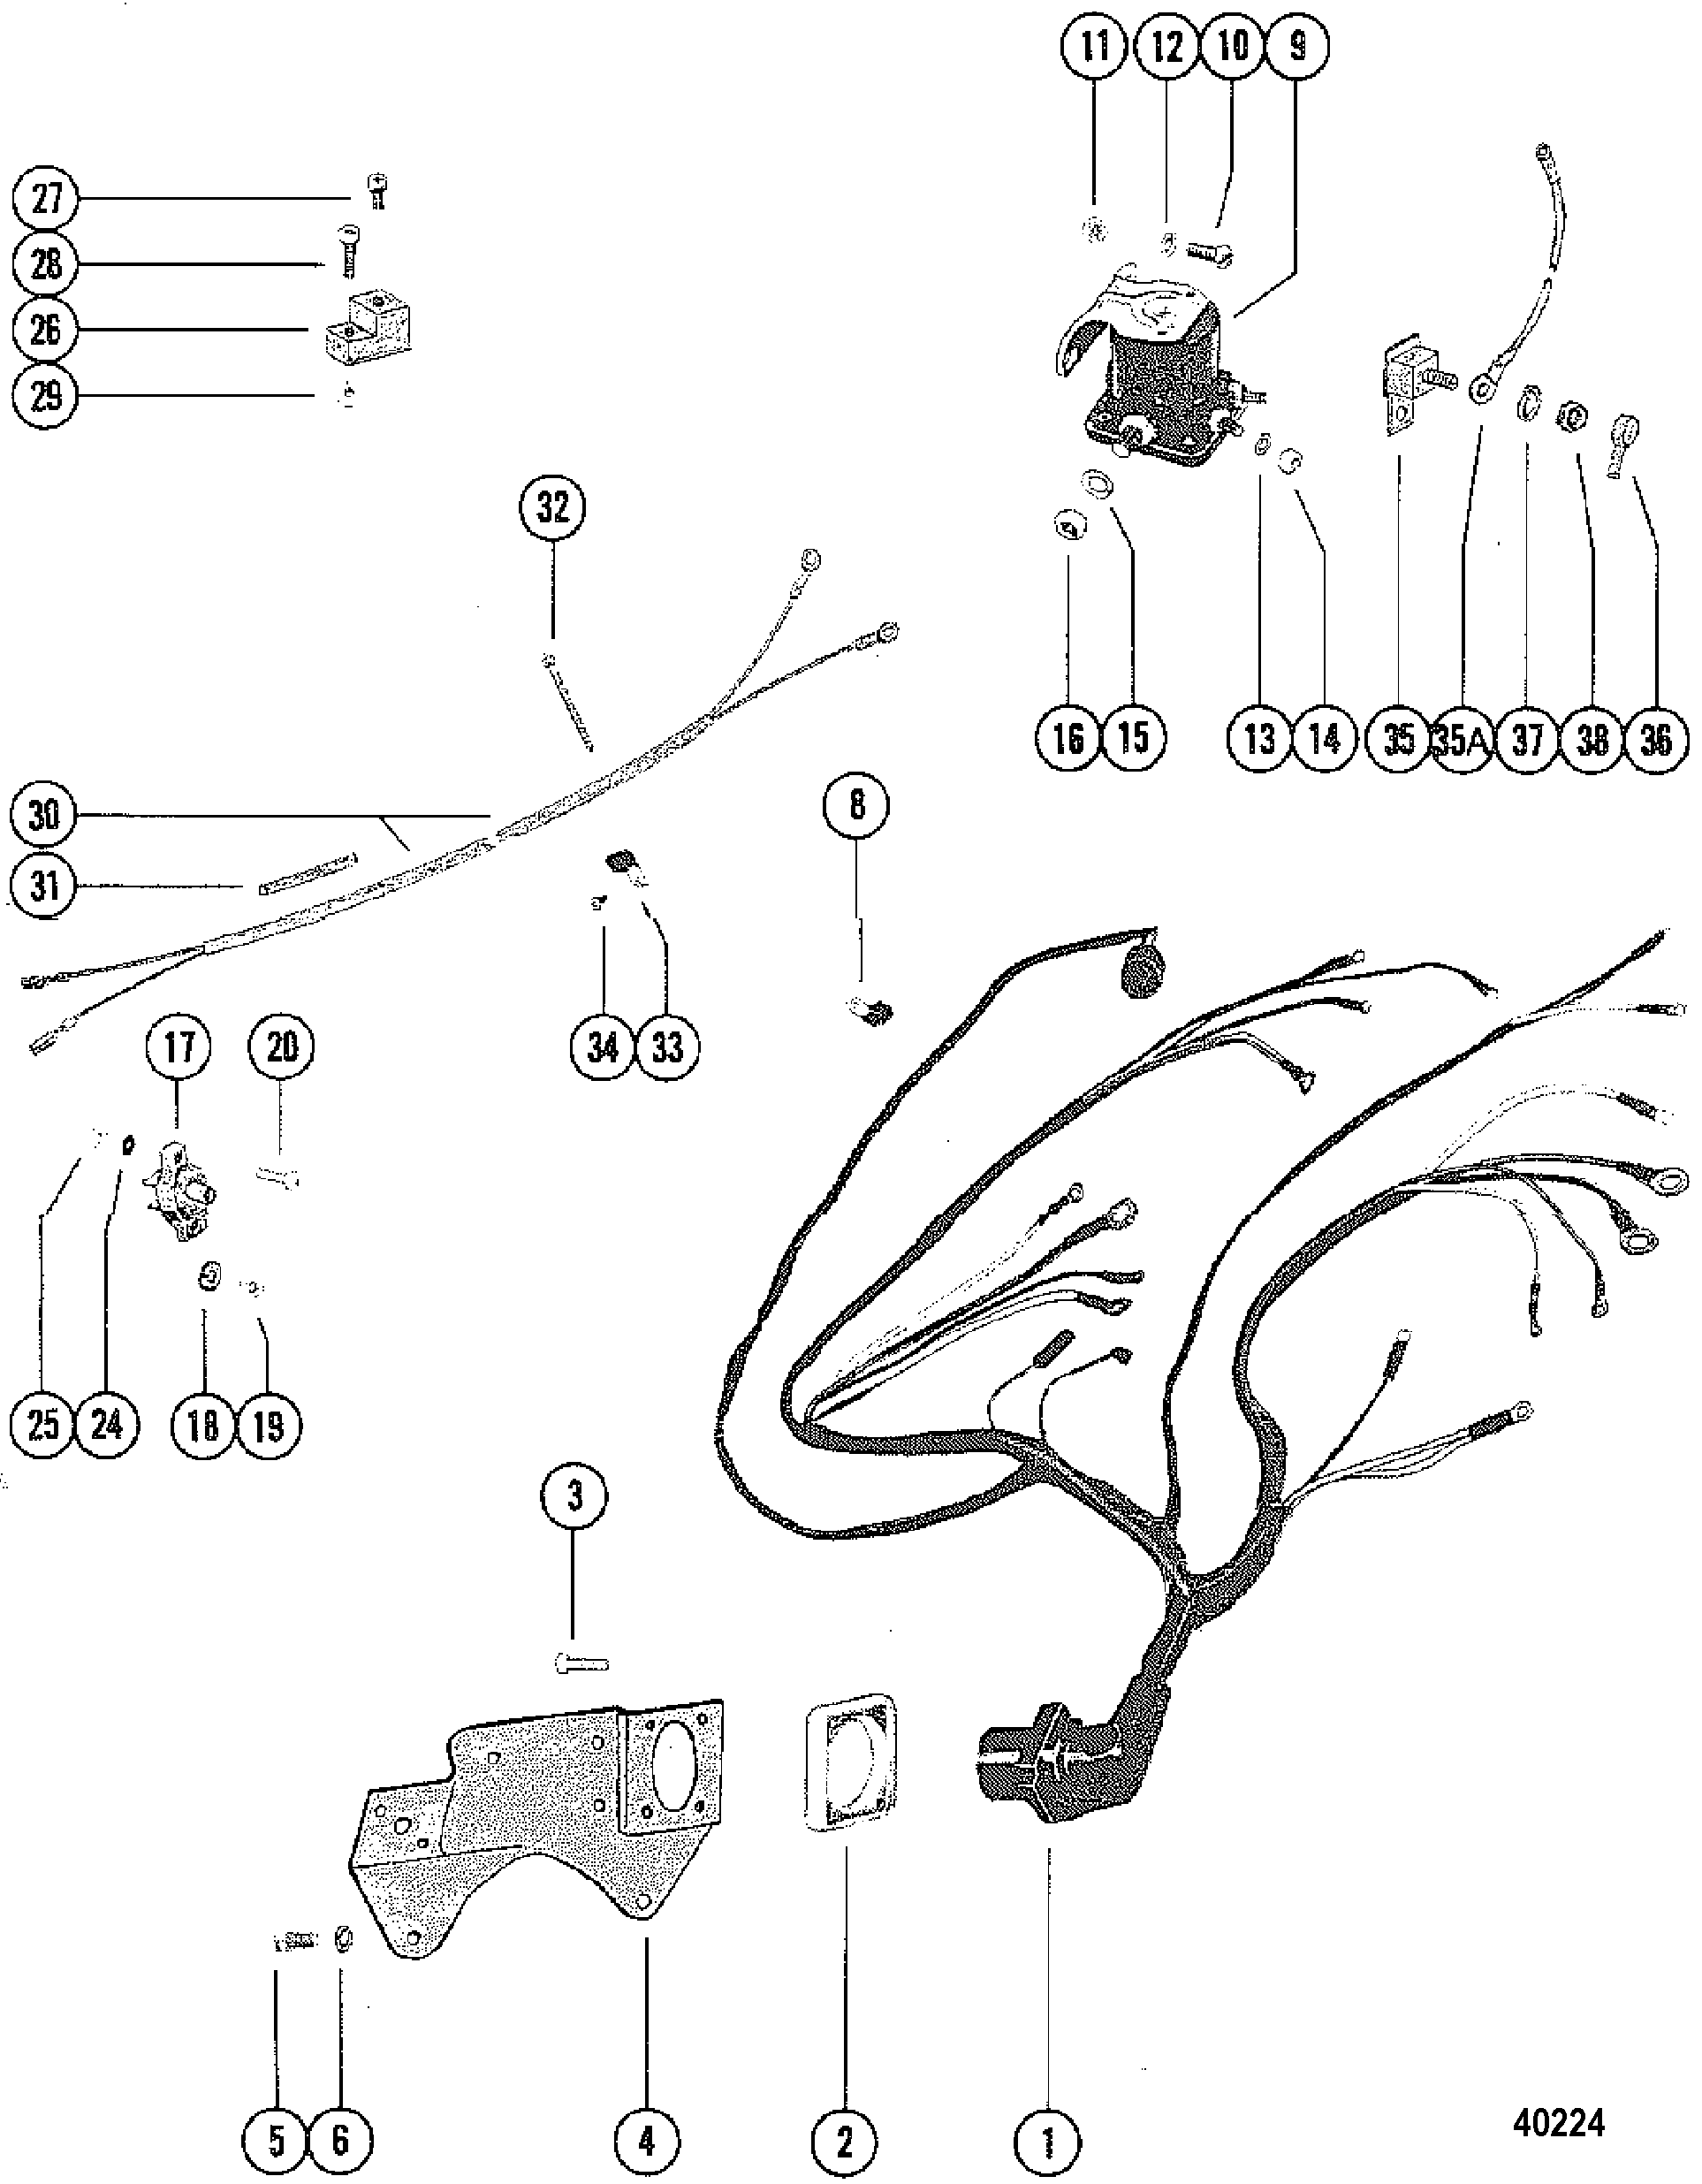 engine wiring harness mercruiser 140 1979 get free image about wiring diagram